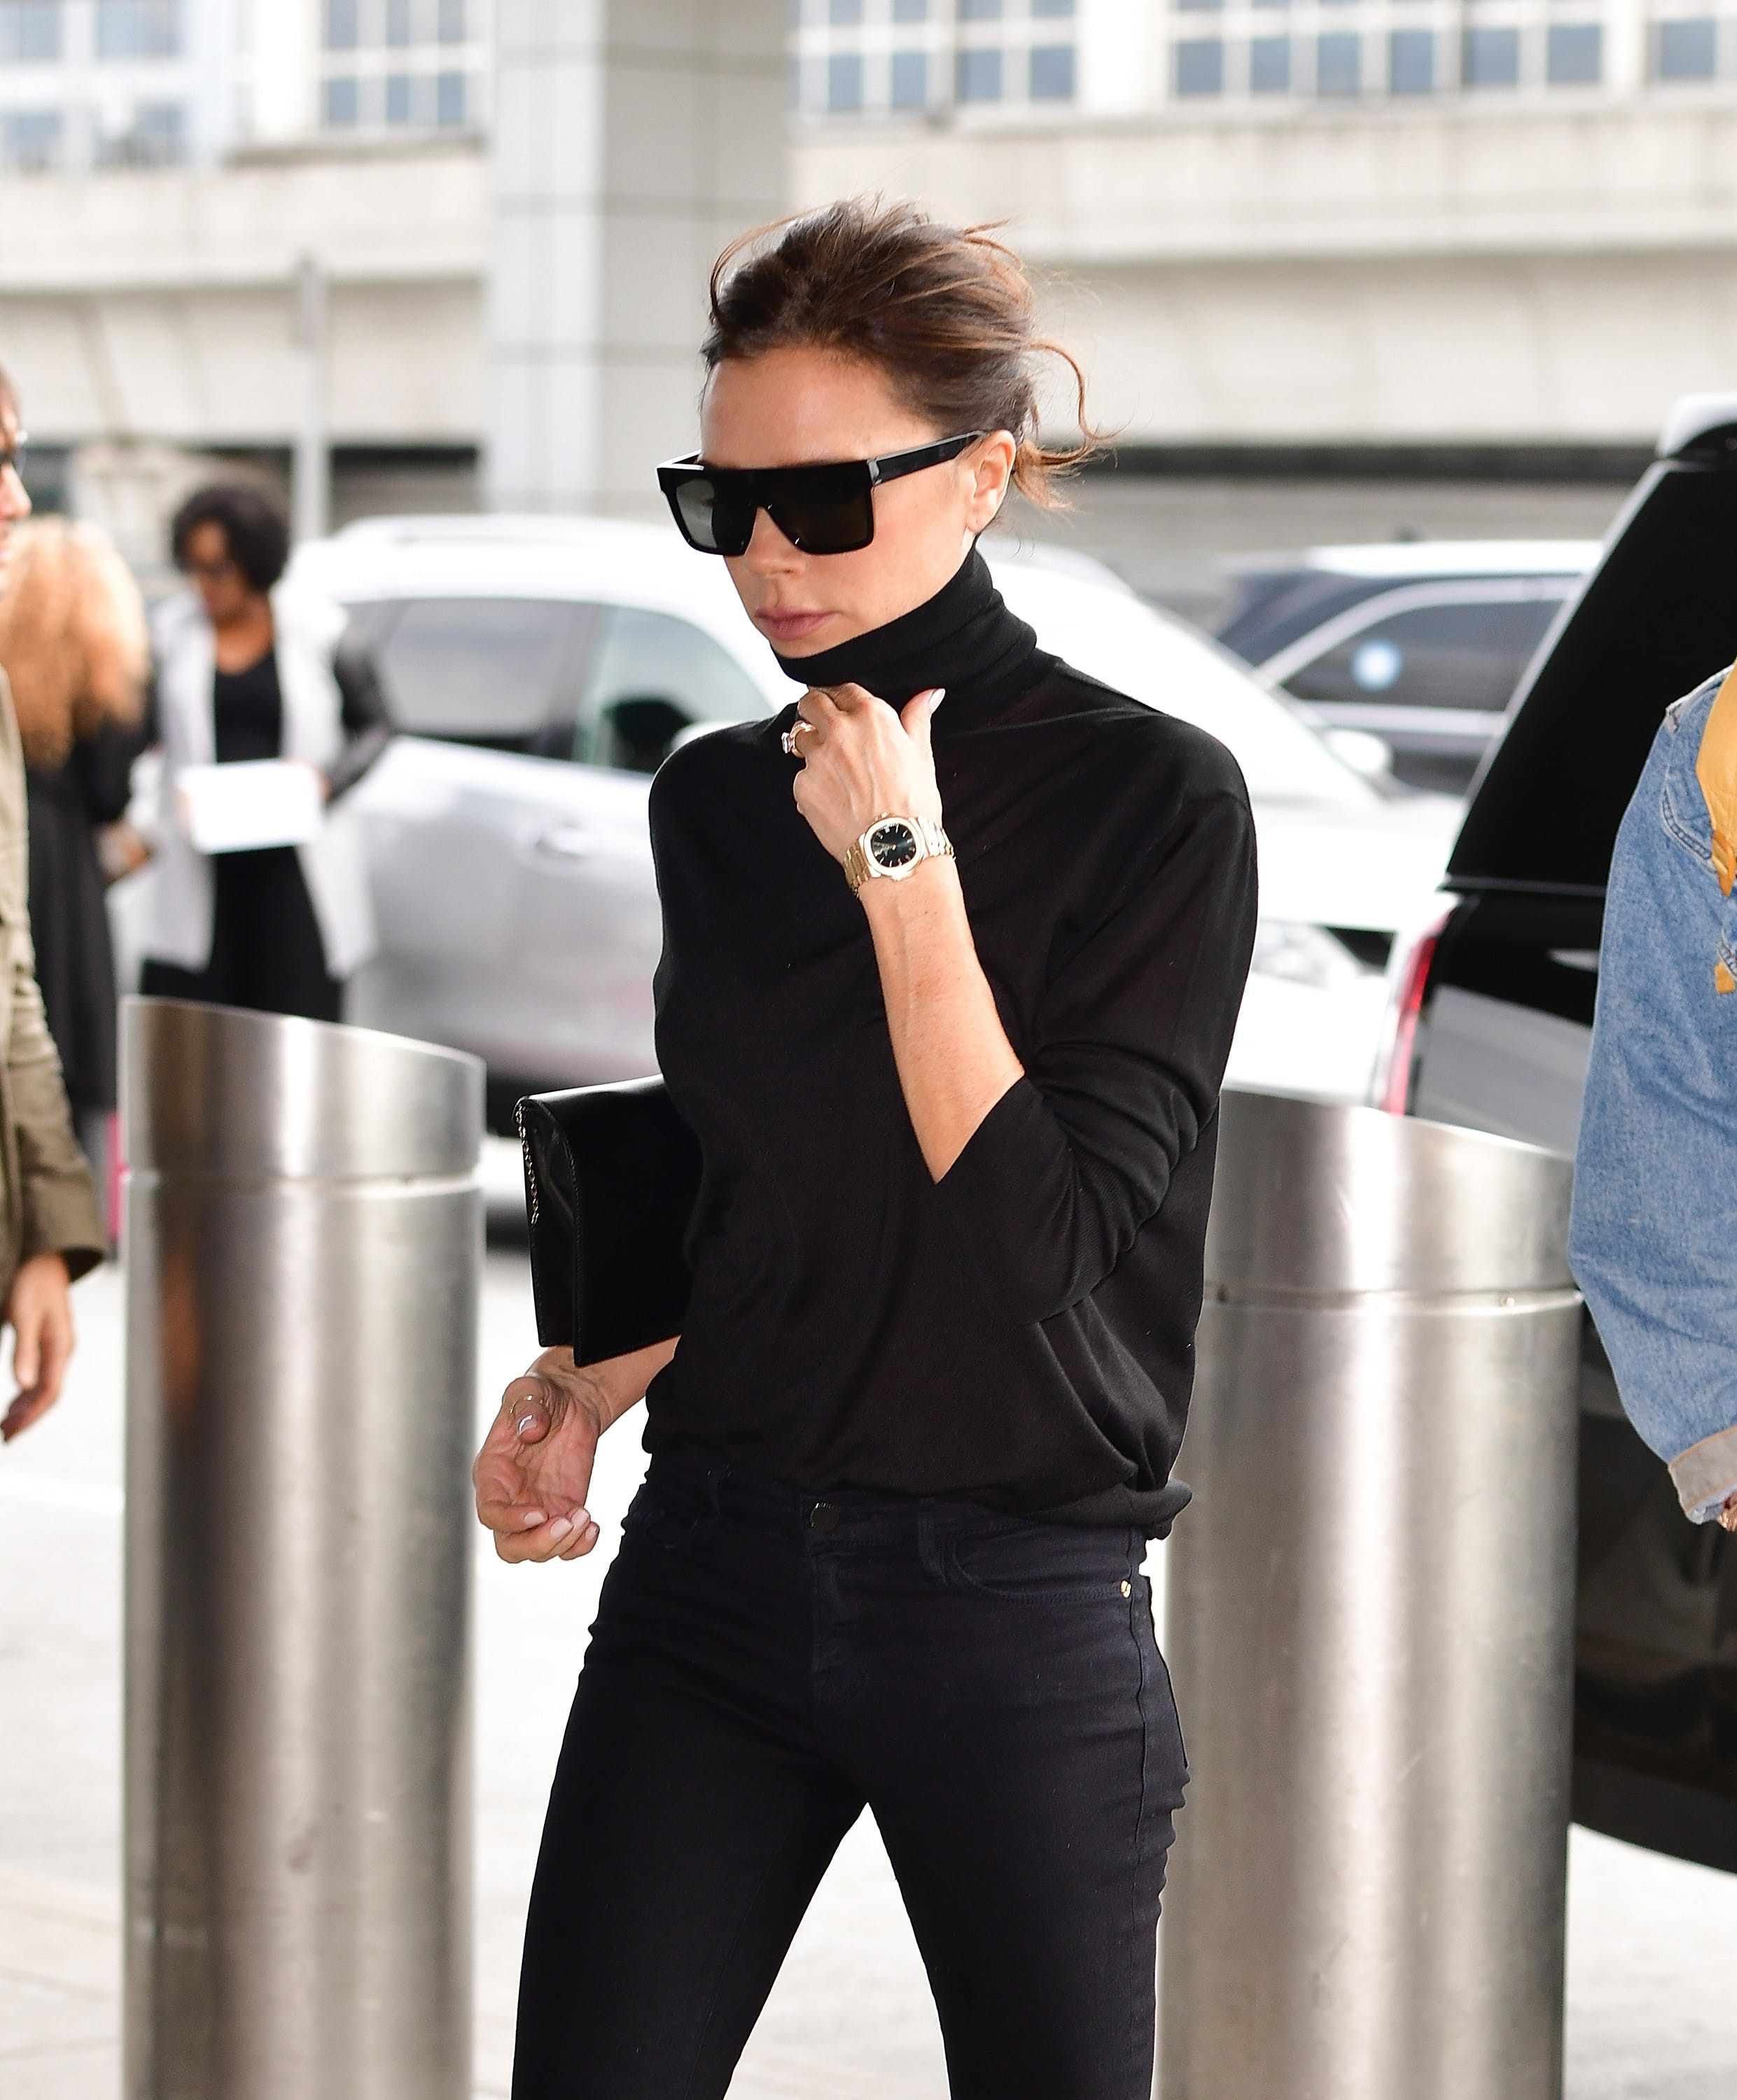 367dca1e360c9 13 Style Lessons We Learned from Victoria Beckham